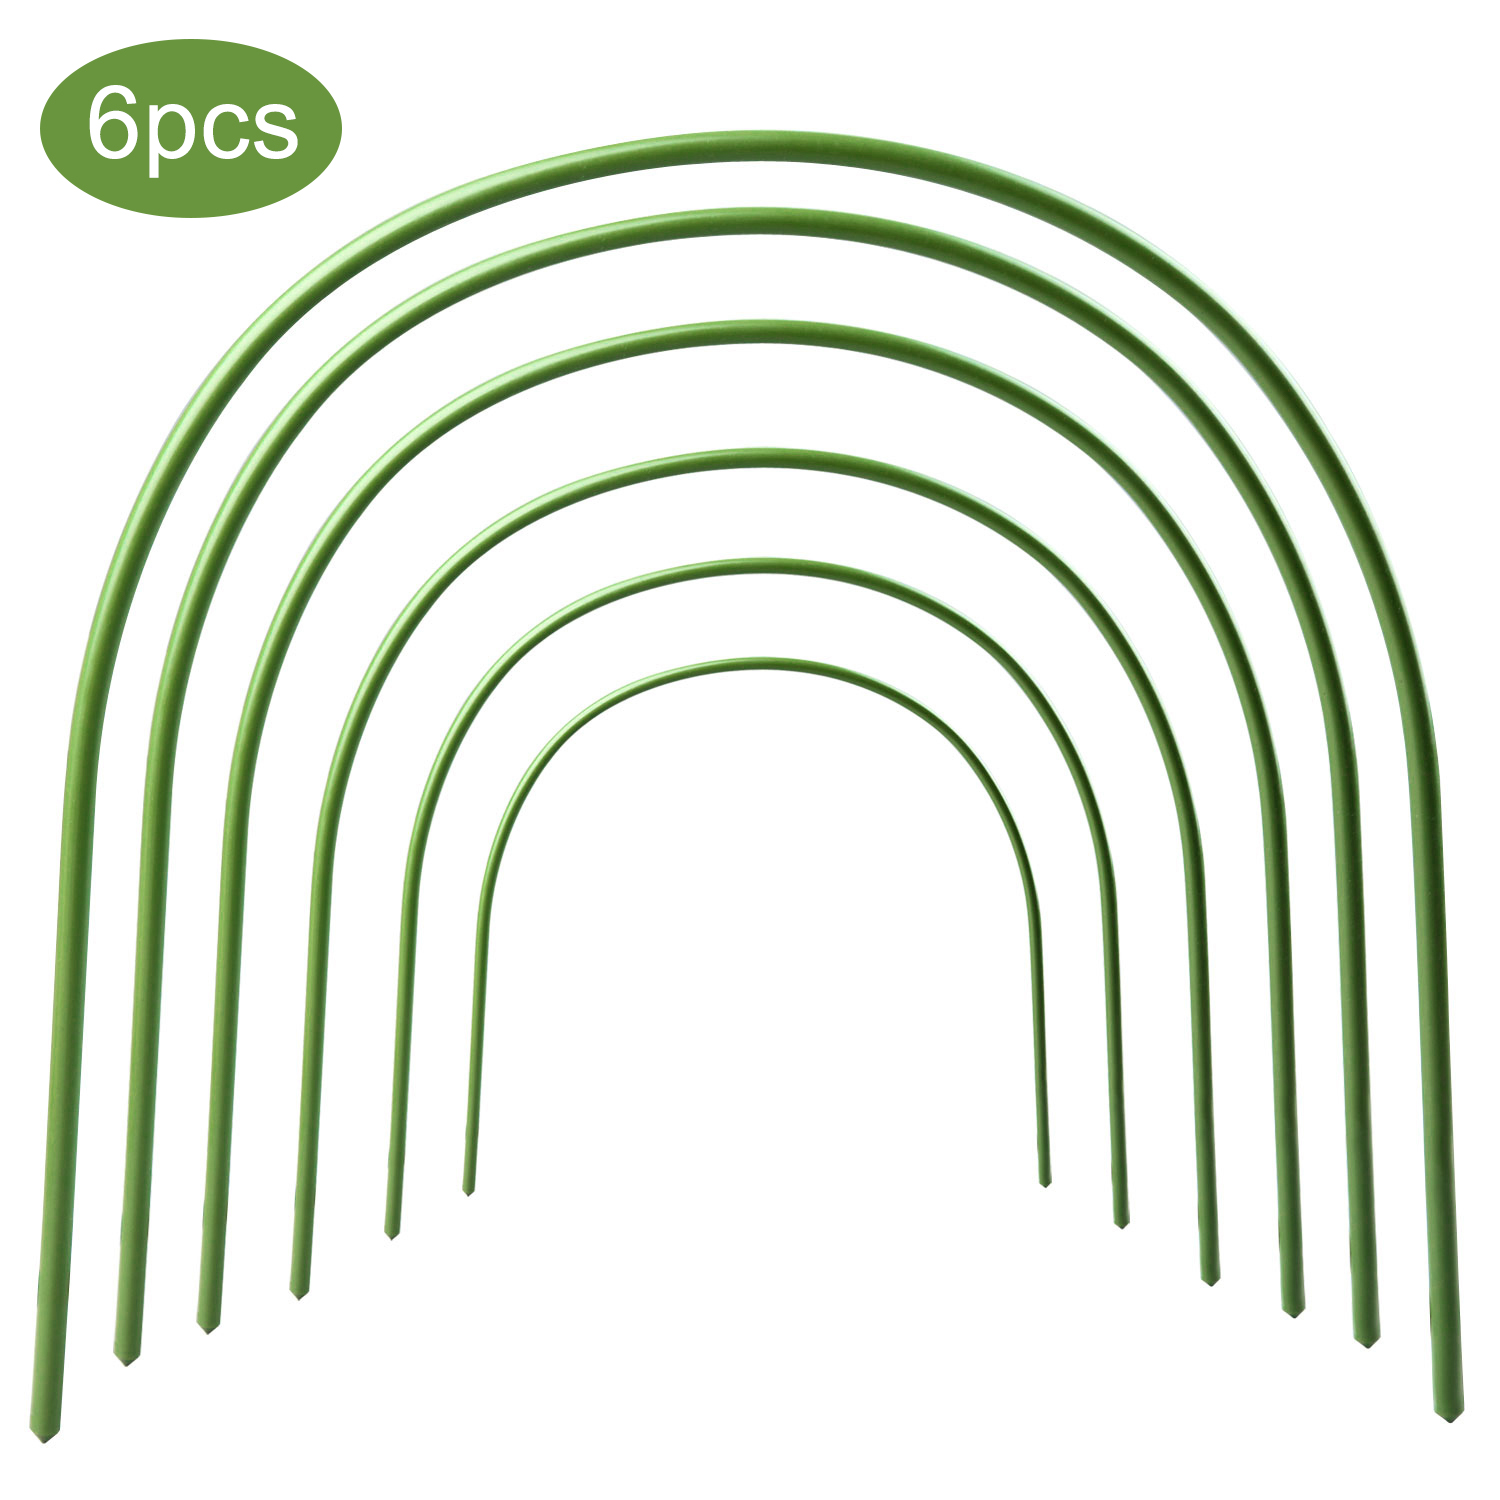 6Pcs Greenhouse Hoops Plant Hoop Grow Garden Tunnel Hoop Support Hoops  Plant Holder Tools For Garden Stakes Farm Agriculture N